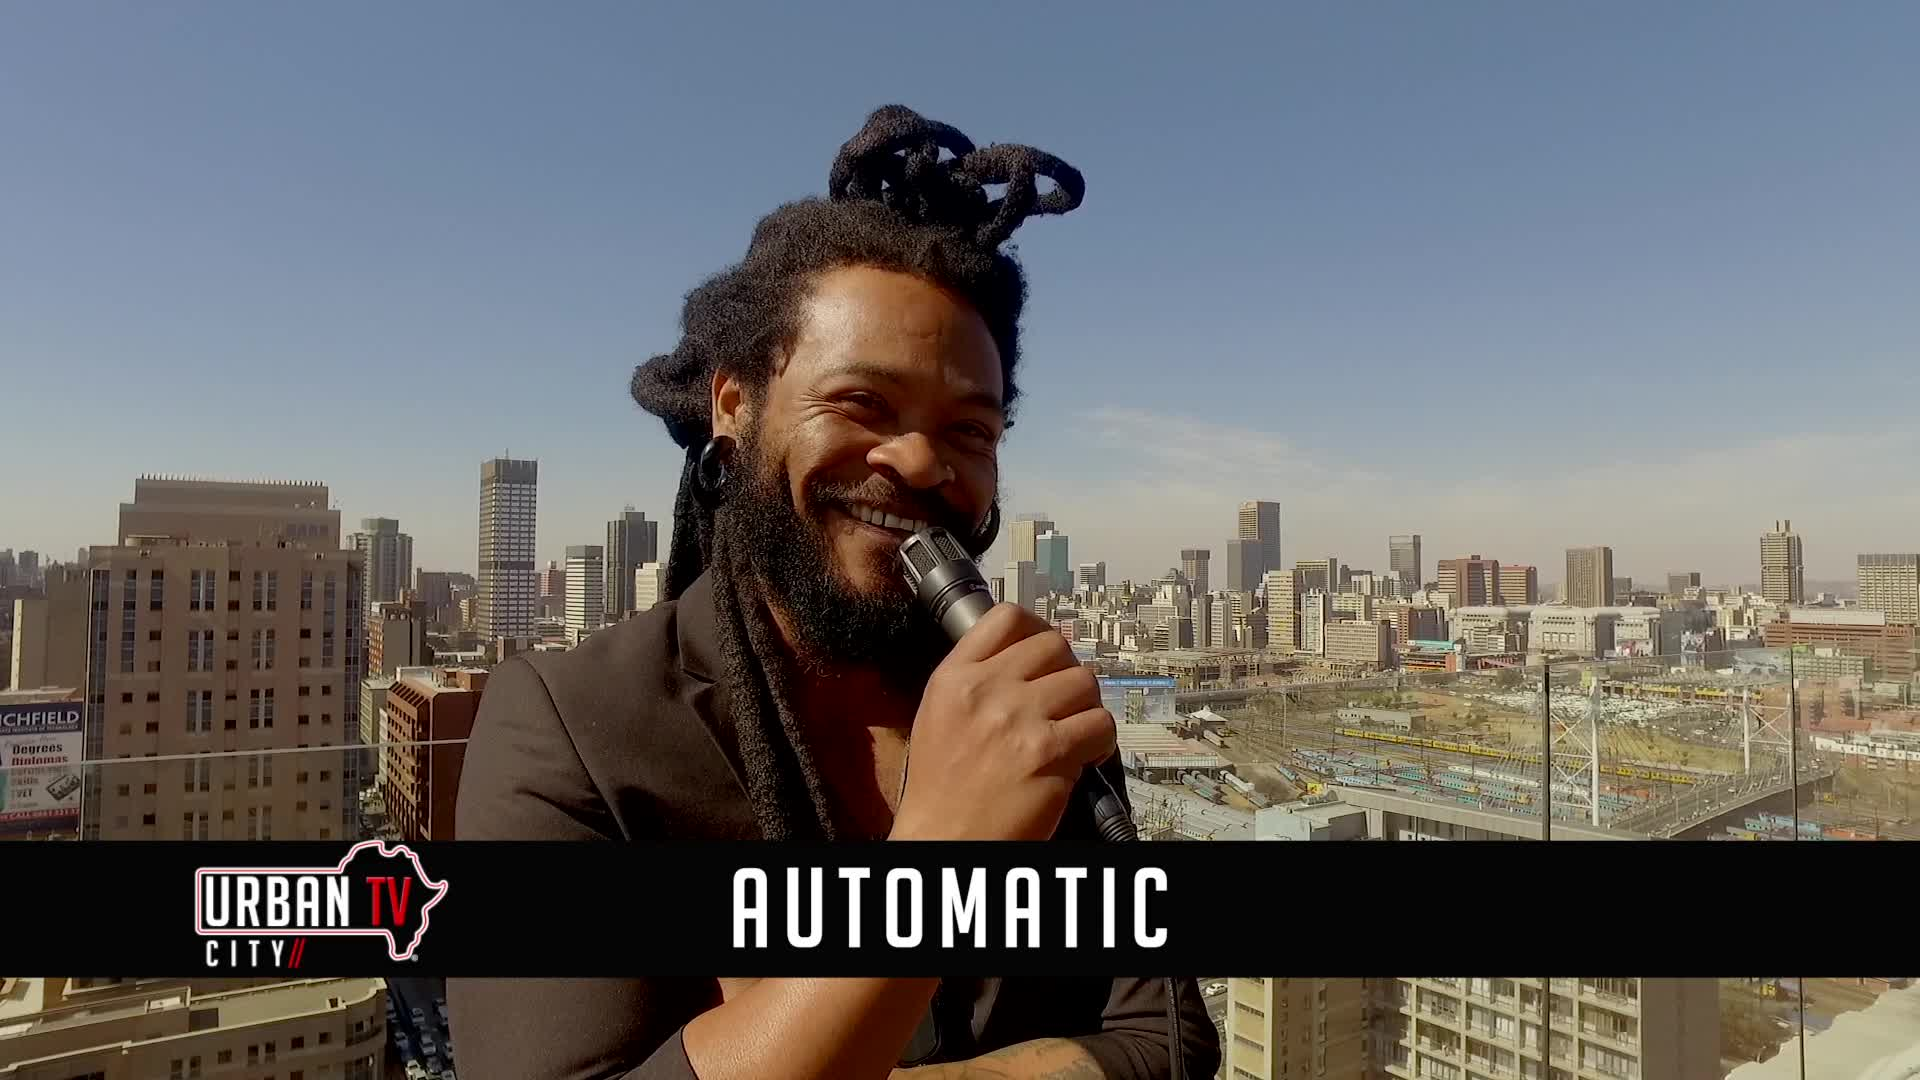 Urban City - Automatic Interview